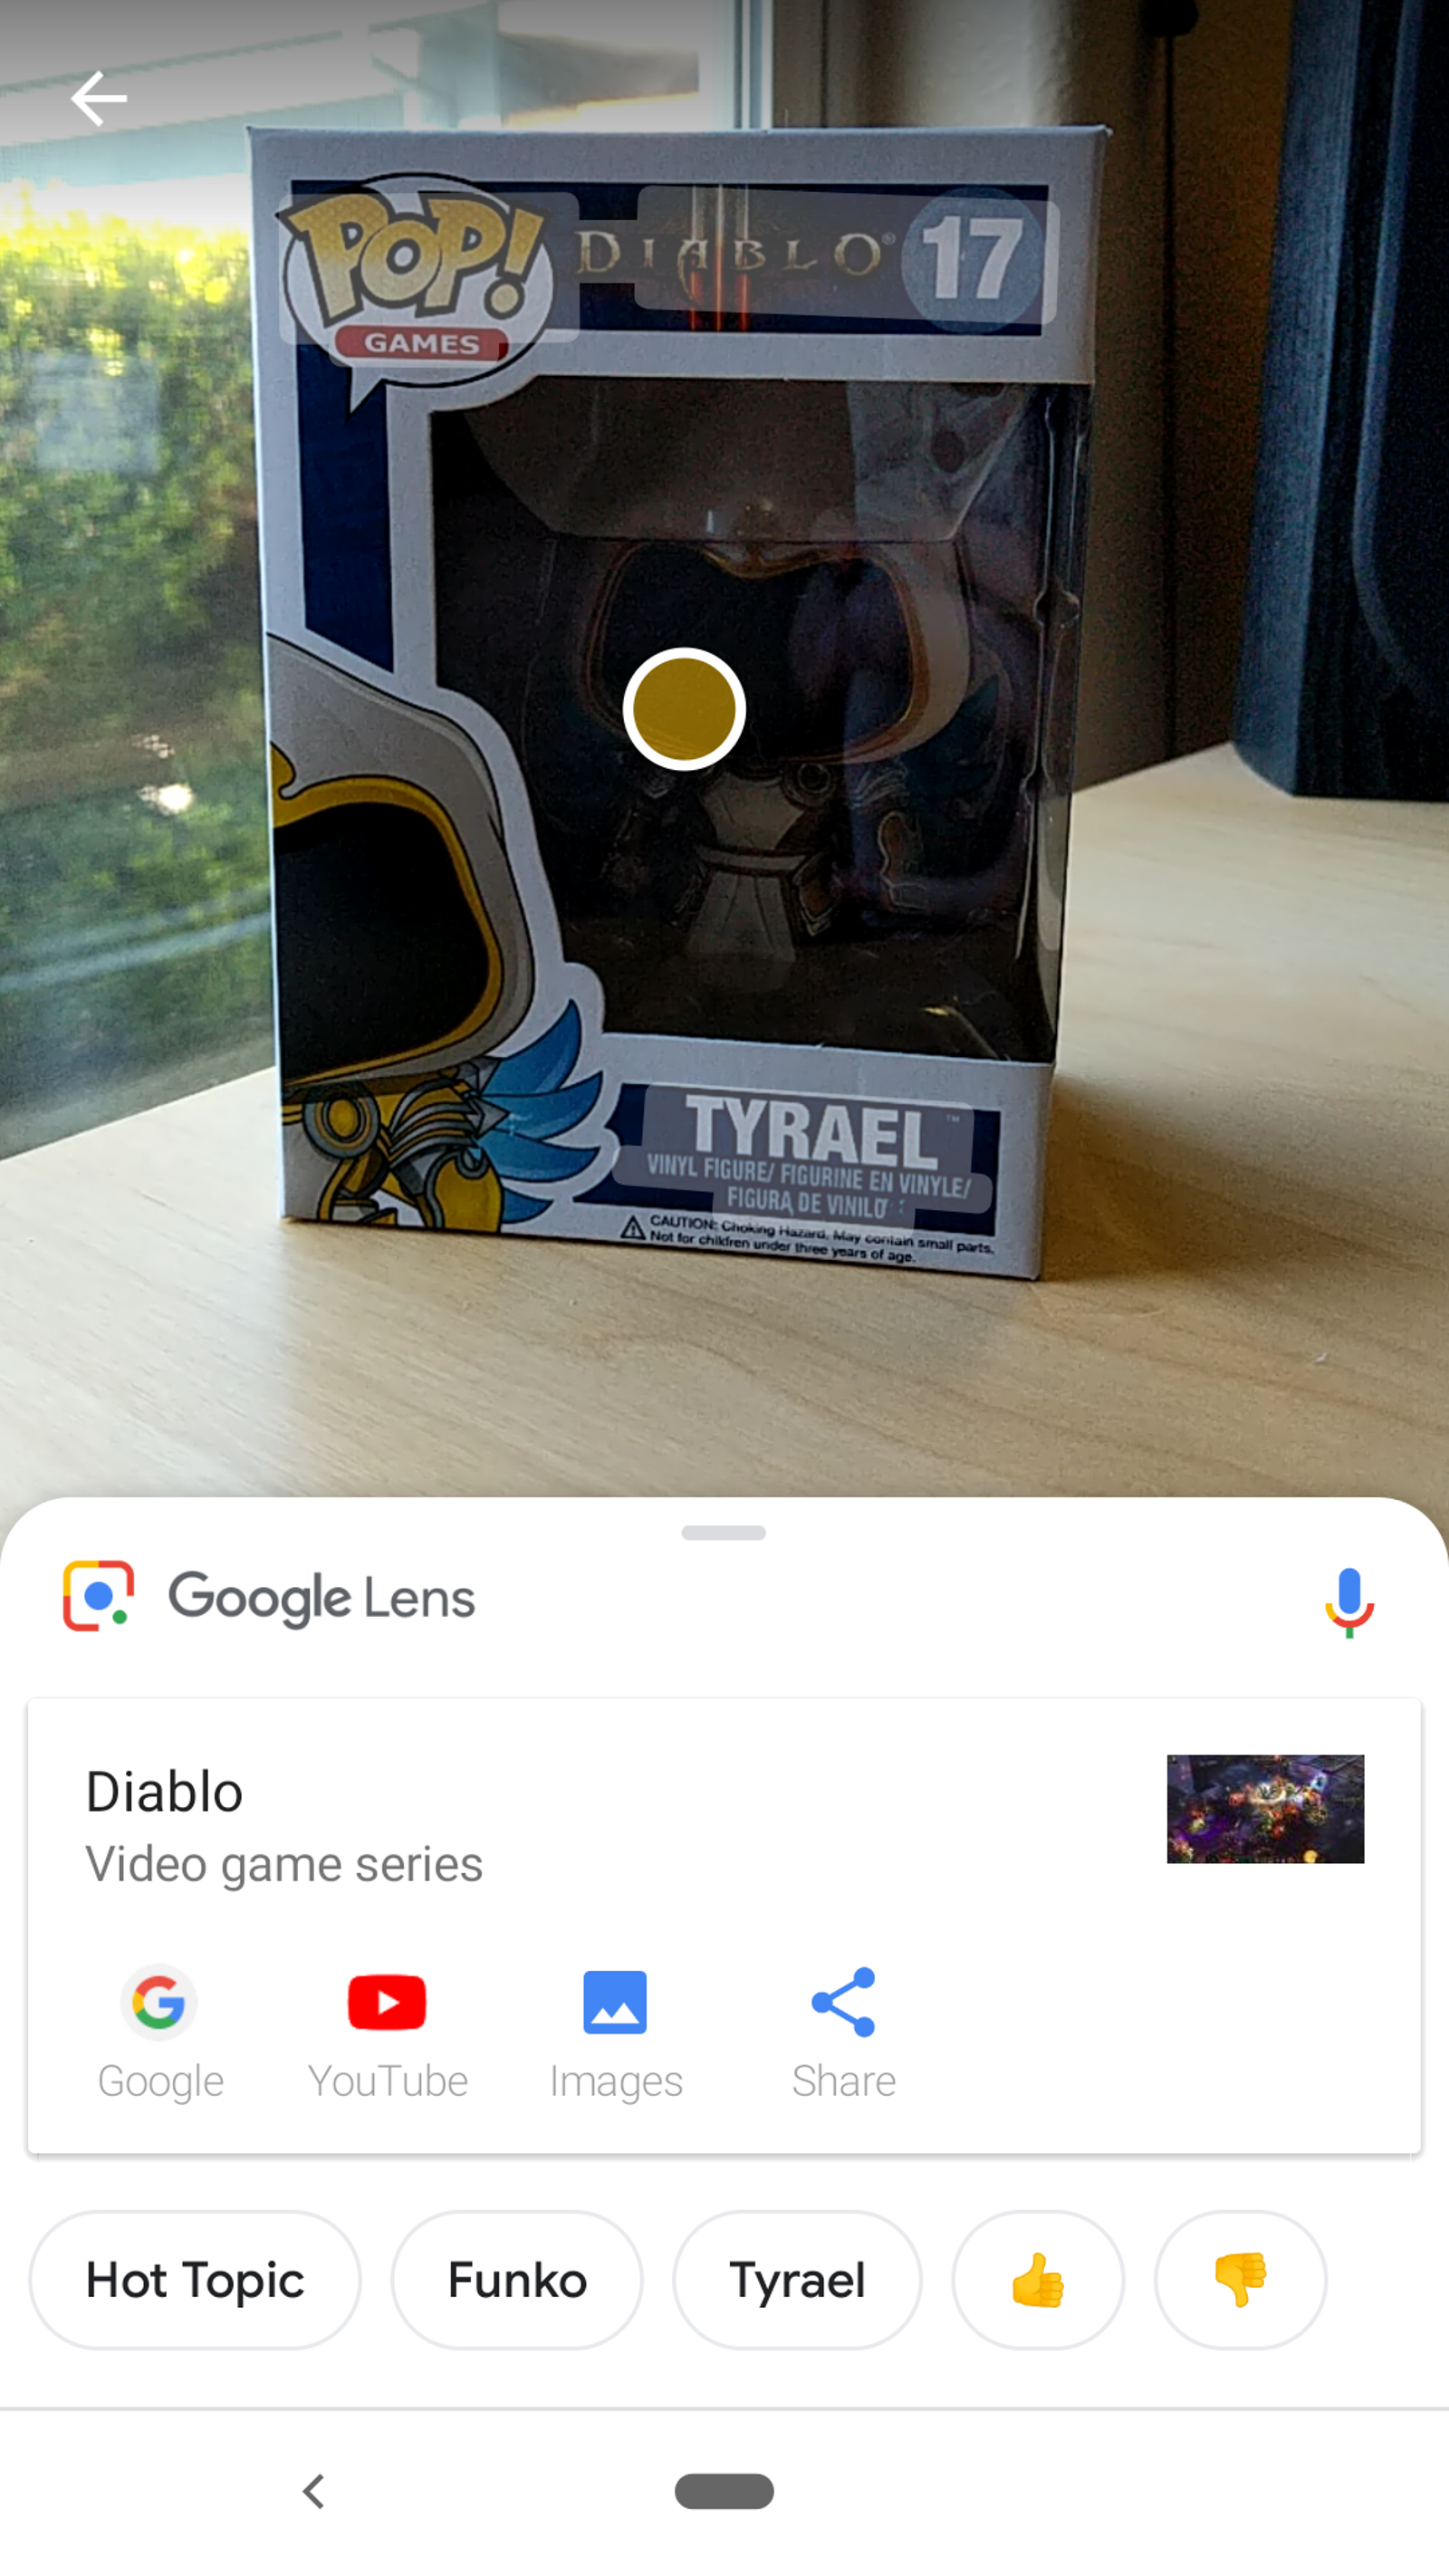 Google Lens correctly identified the Funko Pop's game (Diablo III), the fact that it was a Funko Pop, and even provided a link to where one can typically buy said silly items (Hot Topic). Not too shabby.